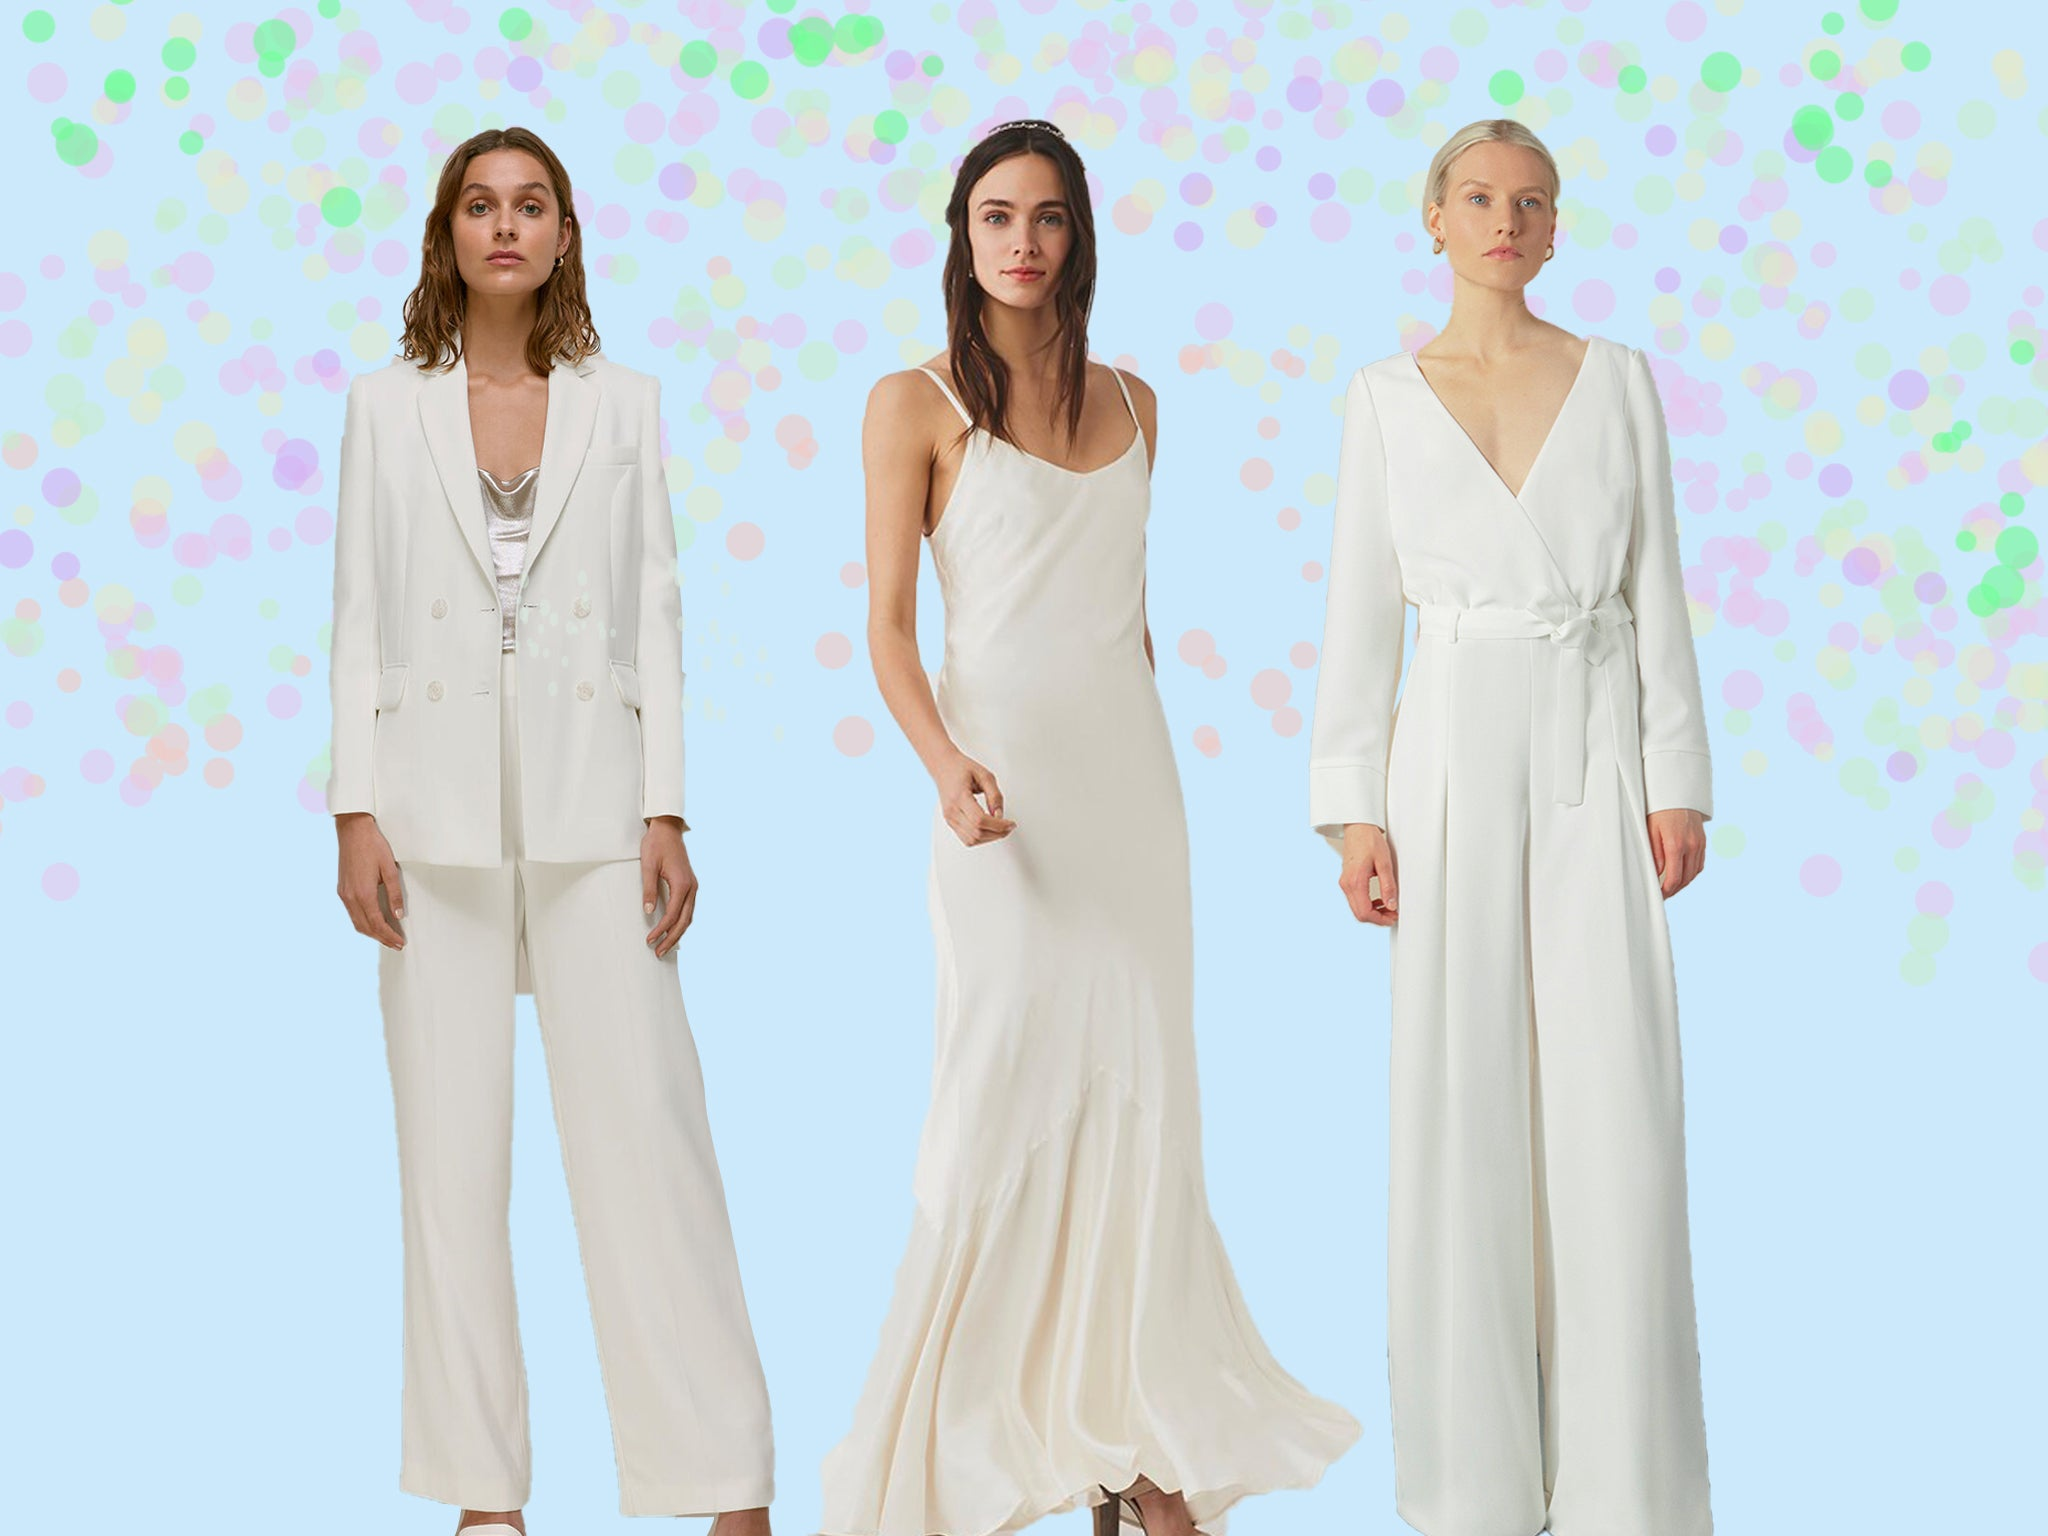 Bridal Outfit Inspiration For An Intimate Civil Ceremony Wedding The Independent